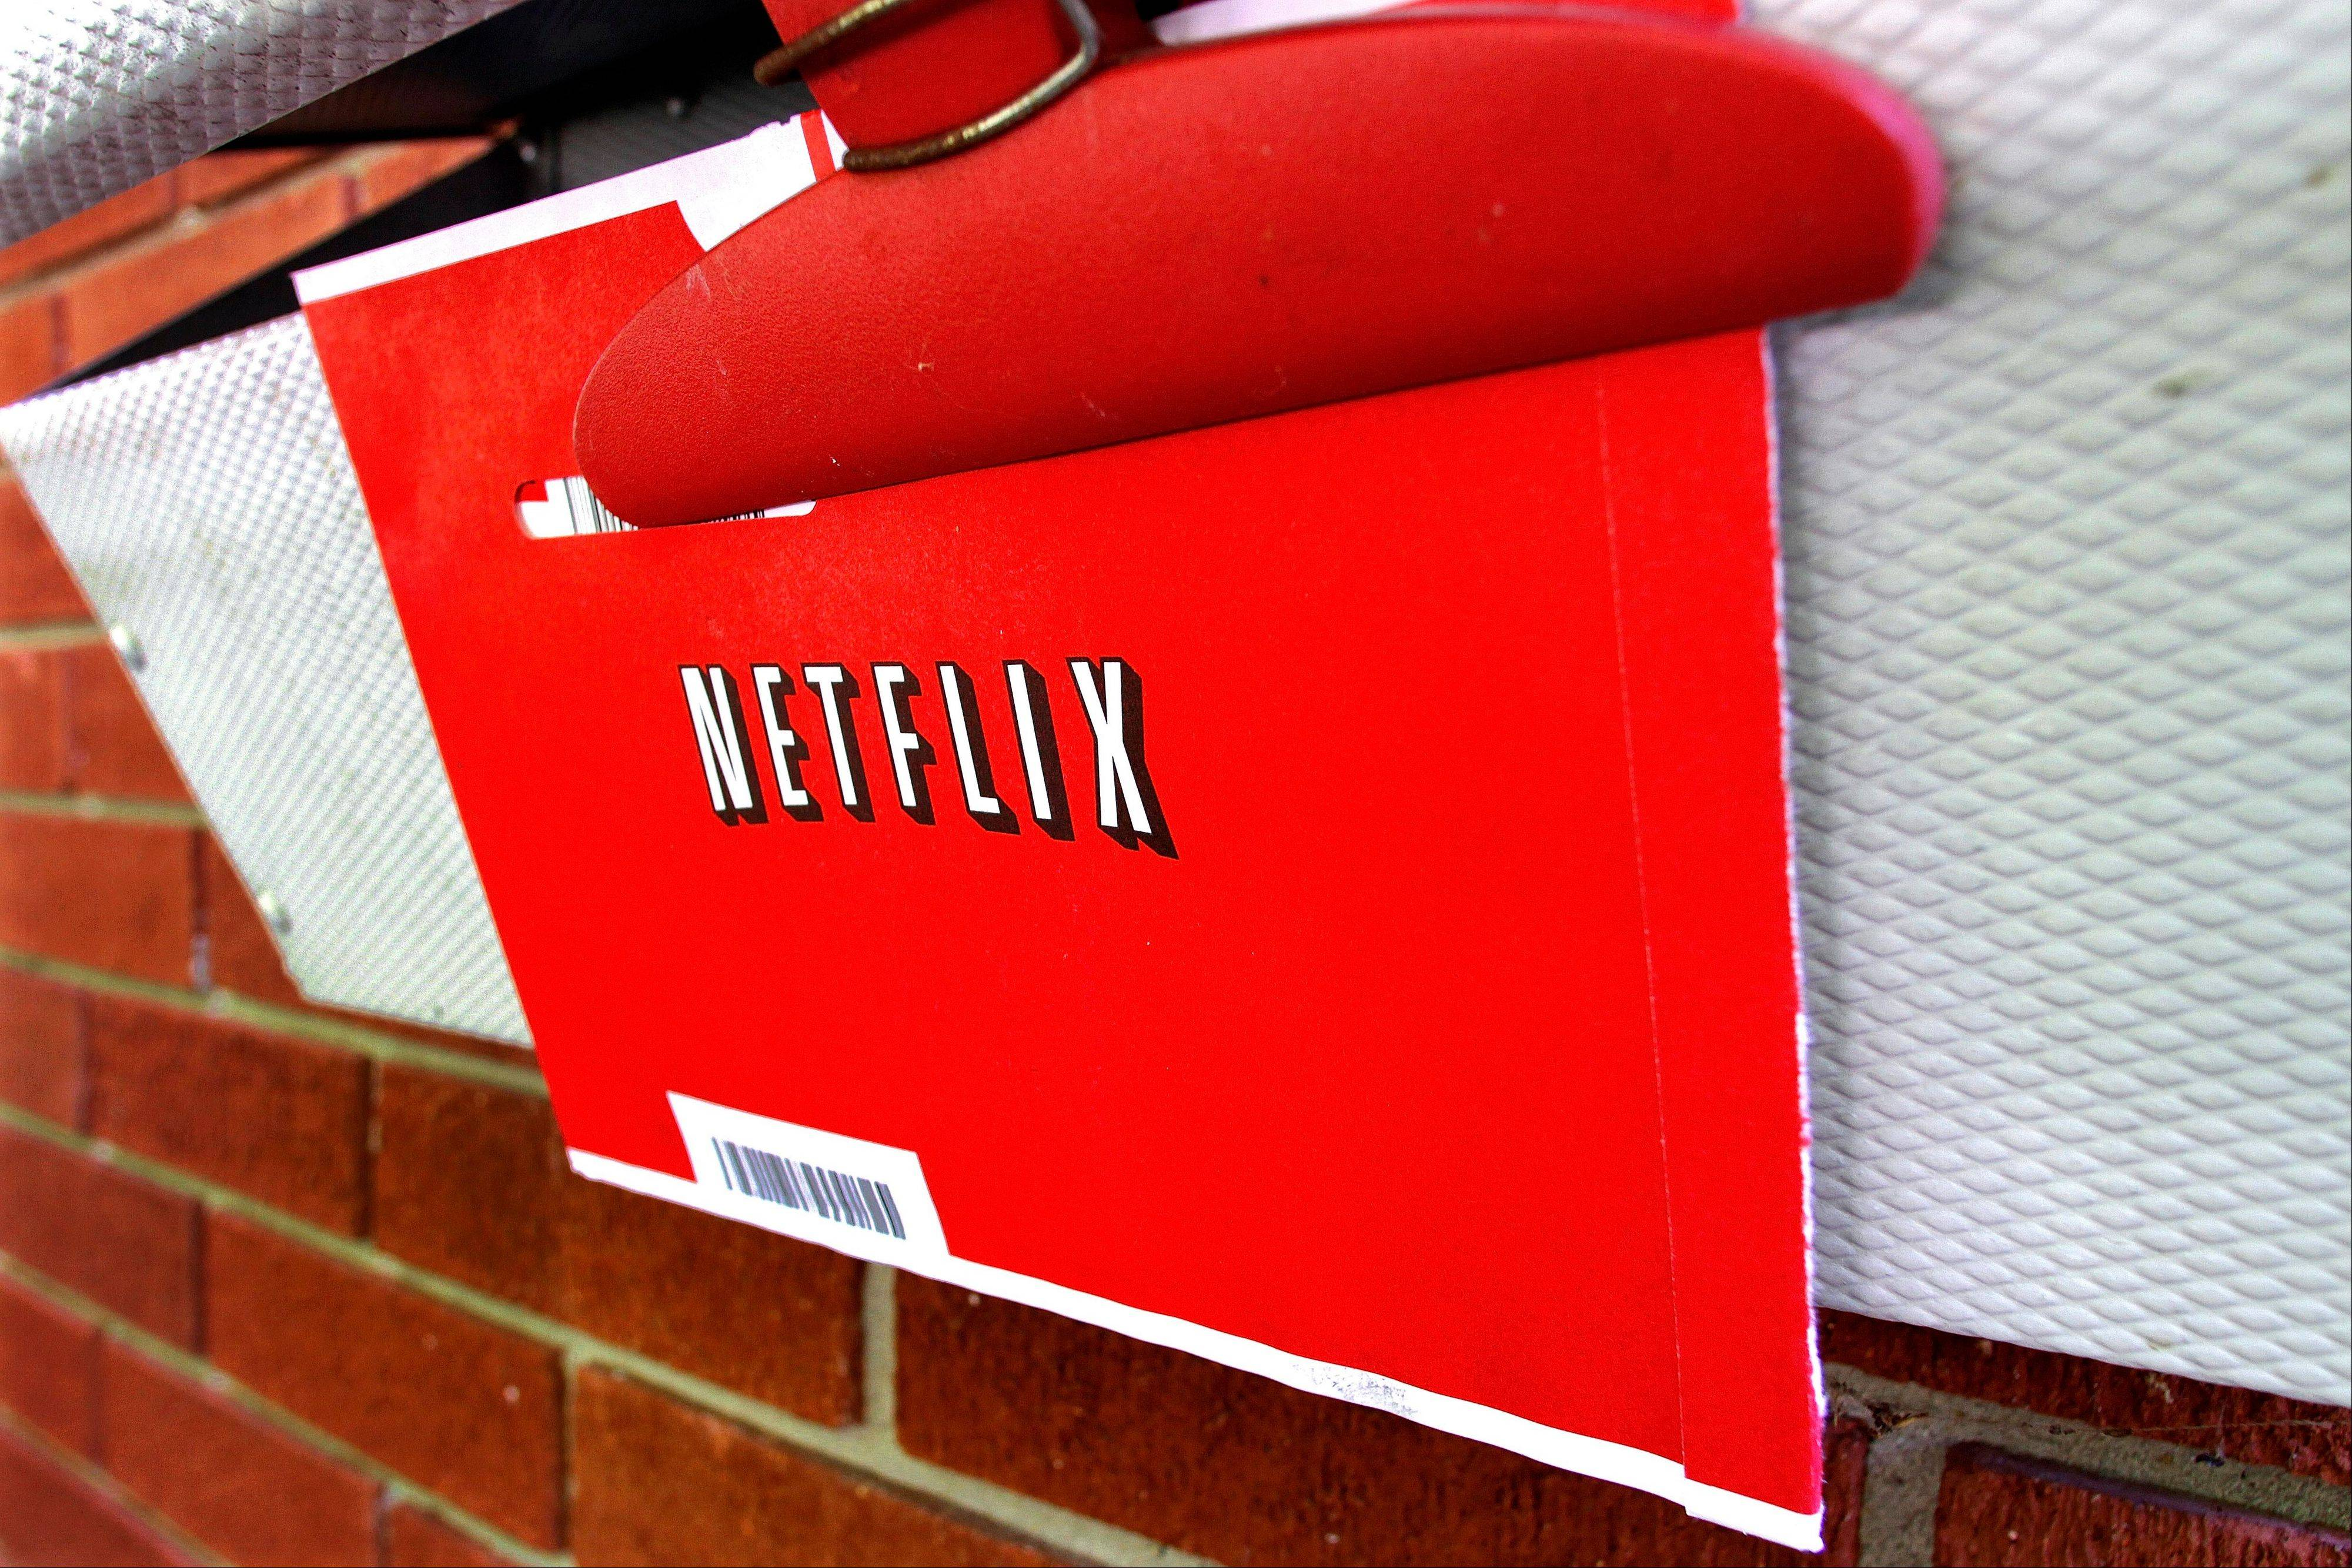 Netflix won't miss Saturday mail delivery, even though the weekend service helped keep its DVD-by-mail subscribers happy.